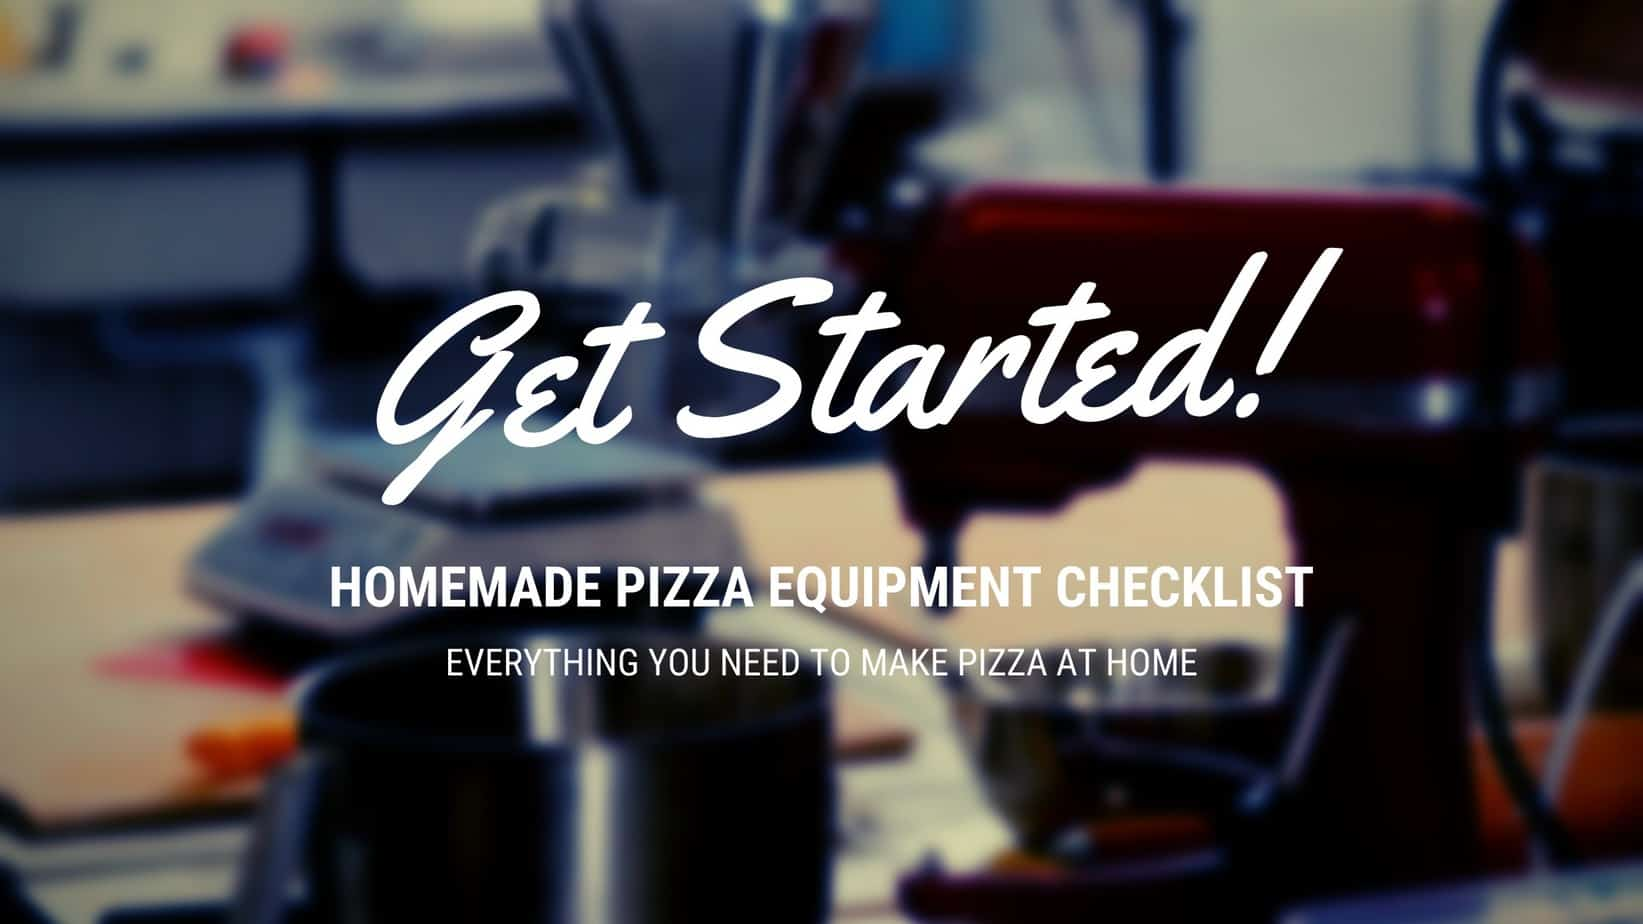 pizza equipment to get started image